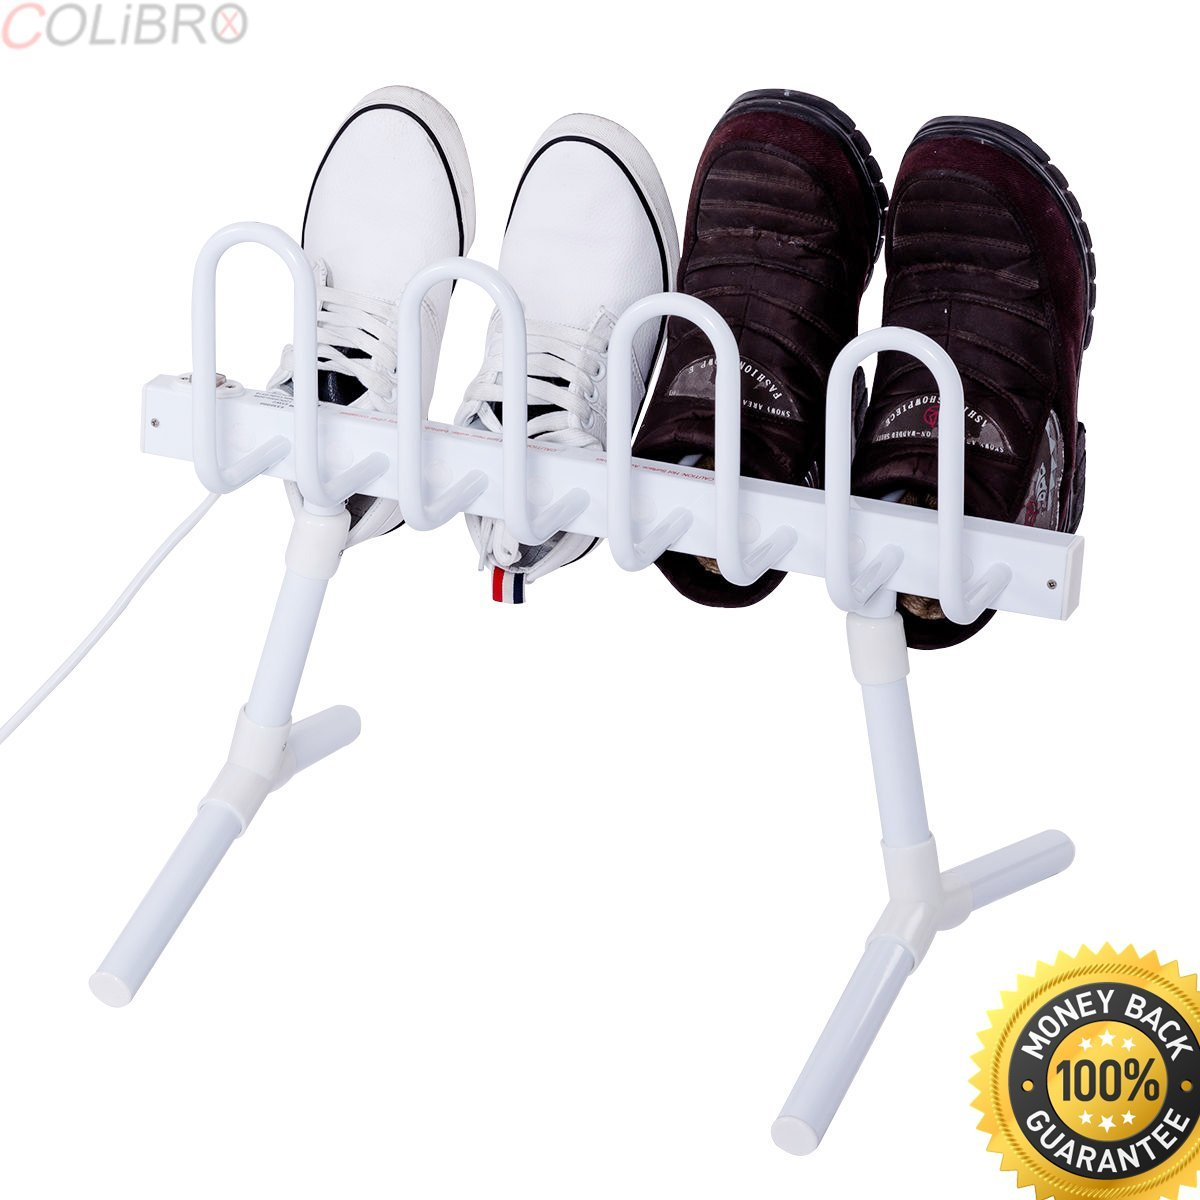 COLIBROX--Freestanding Electric Shoe Drying Rack Dries Dehumidifies Shoes Boots Gloves. shoe drying rack for dryer. shoe rack for samsung dryer. boot drying rack. shoe dryer amazon. portable ski boot.